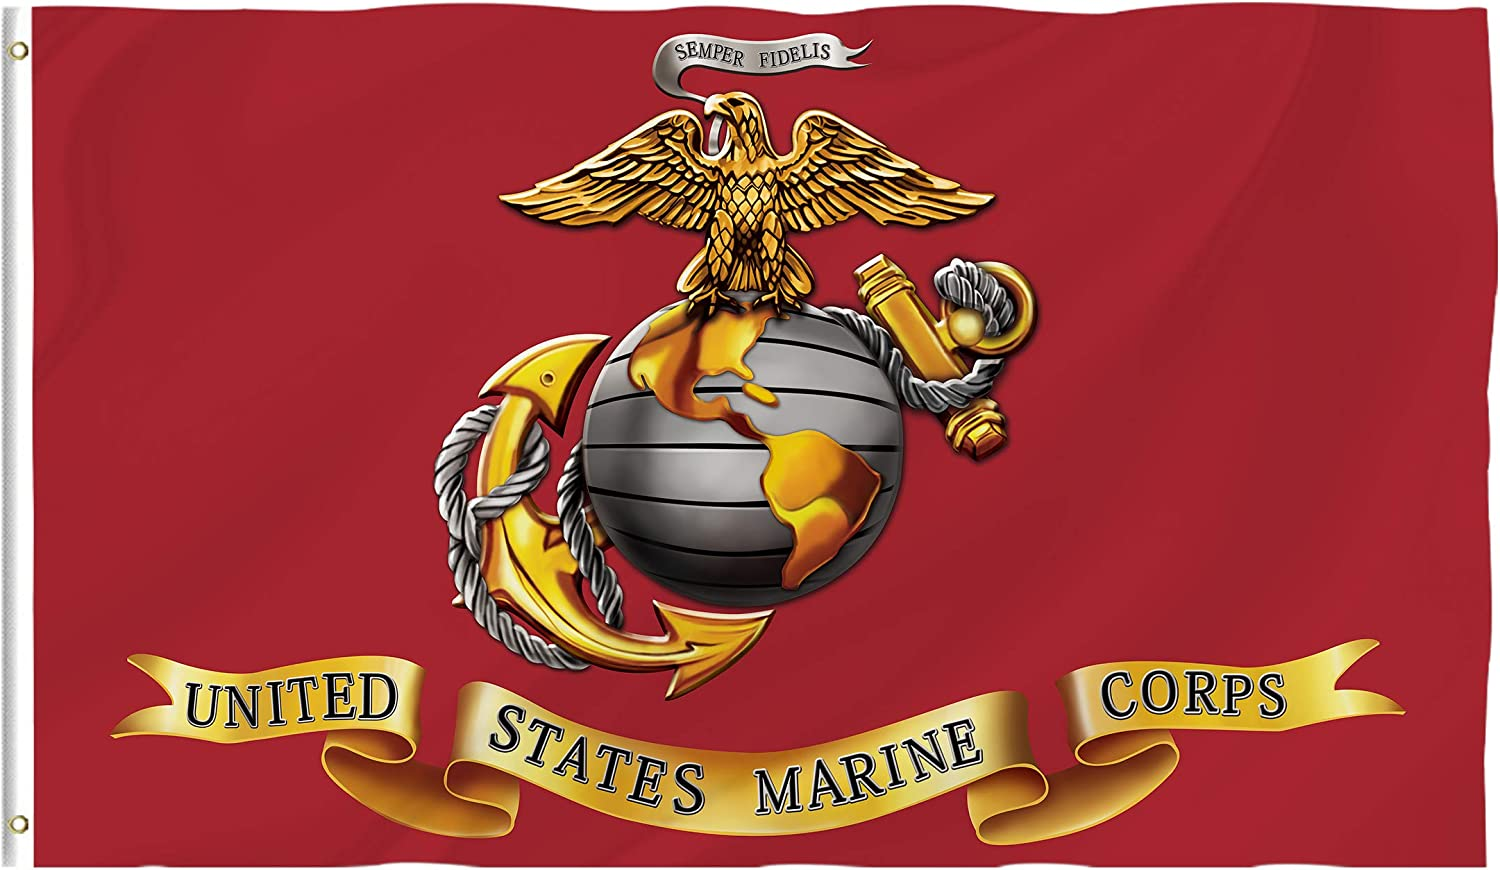 Hexagram Marine Corps Flag Semper Fi Resistant Doubl Portland Mall 2021new shipping free shipping 4x6 UV - Ft